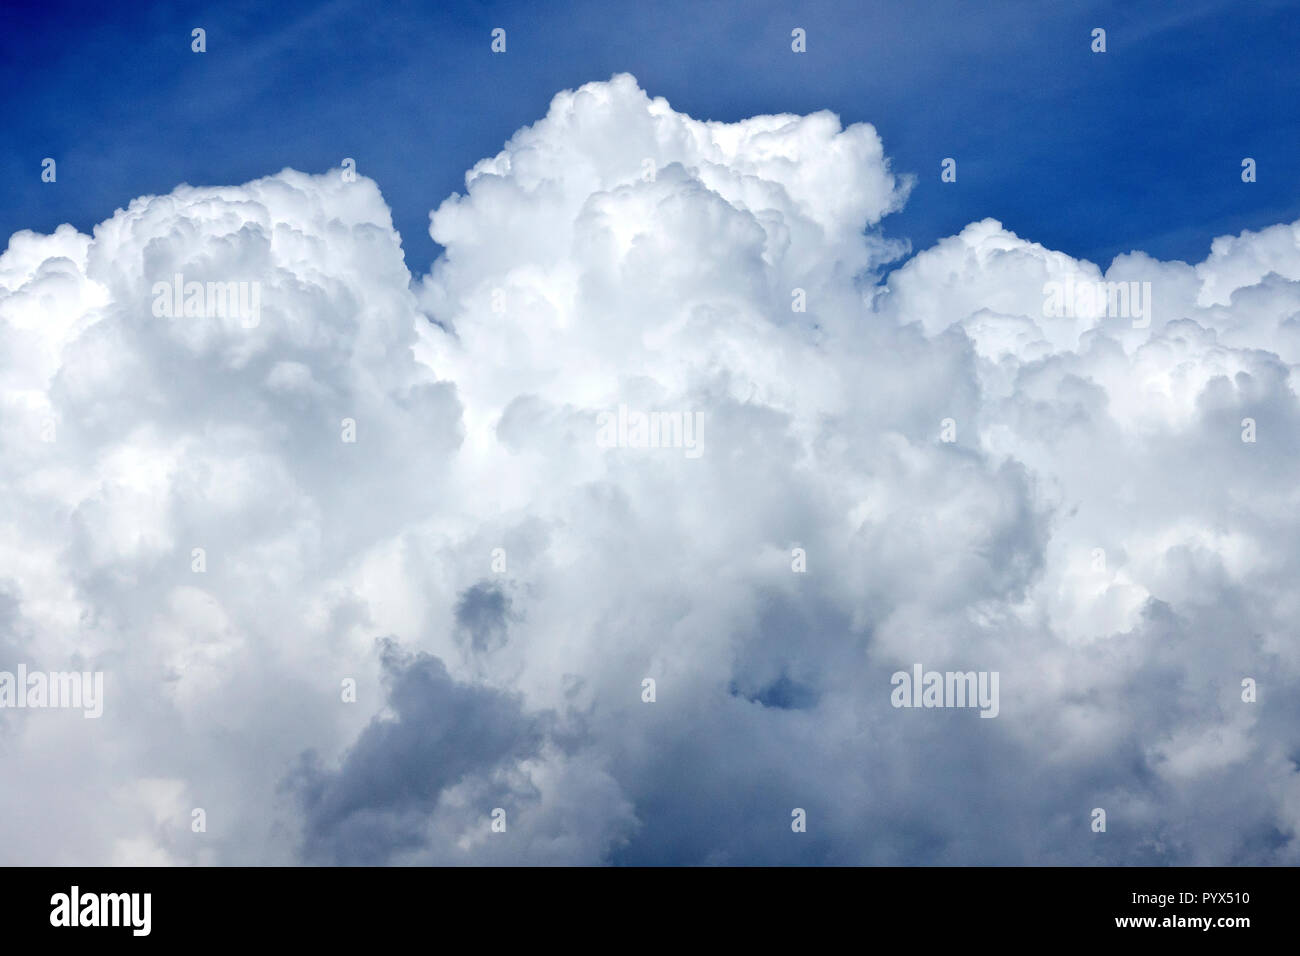 Approaching storm clouds (cumulonimbus) about to ruin a beautiful summer's day. - Stock Image